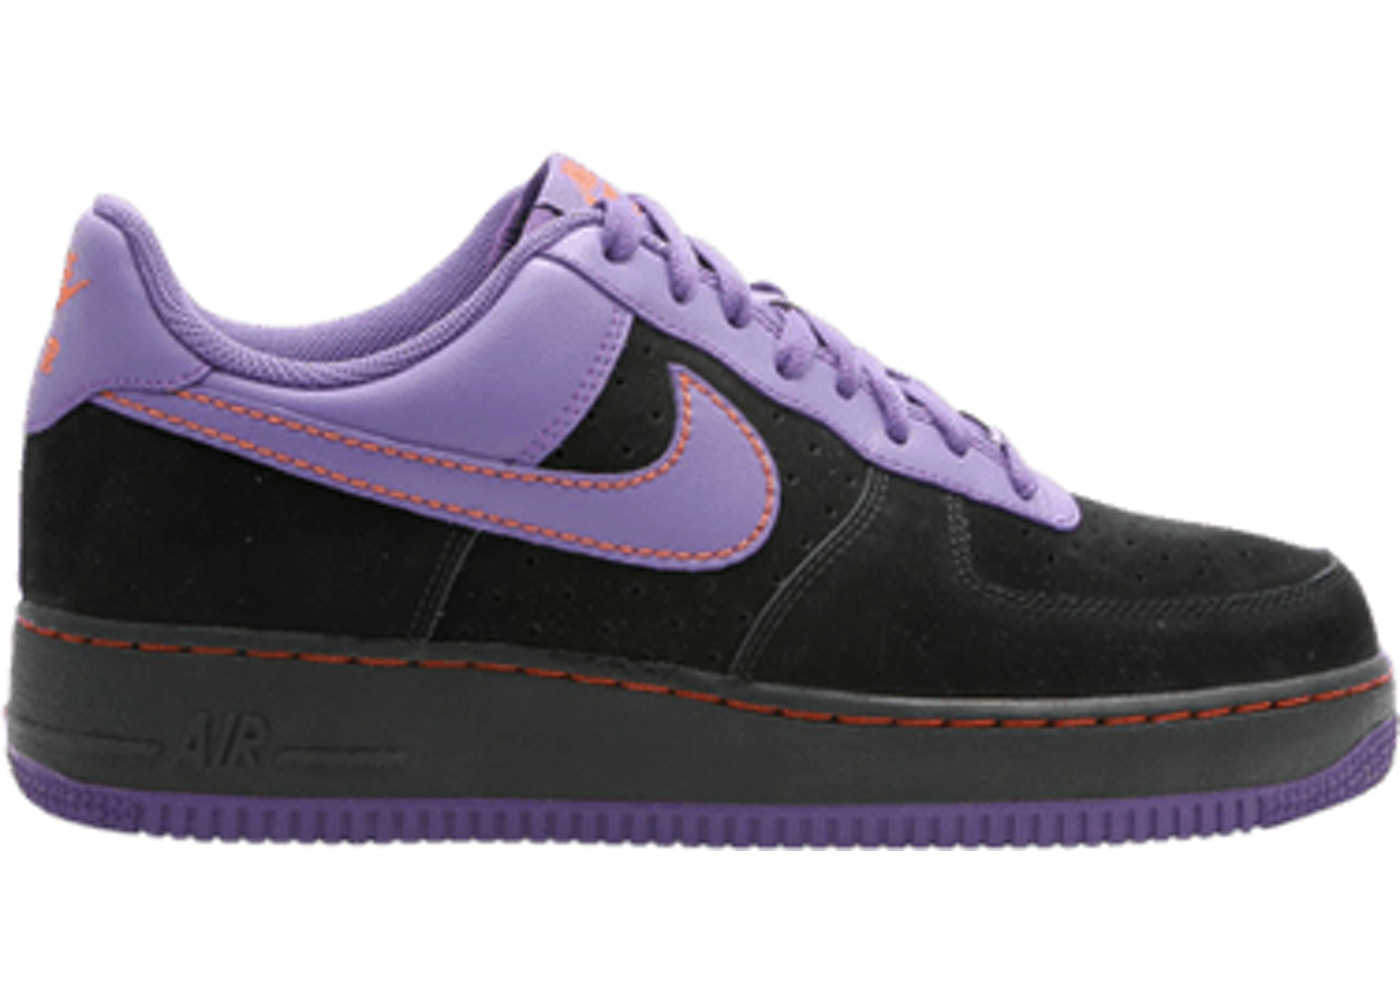 brand new e274d 65571 Air Force 1 Low Charles Barkley Suns Away